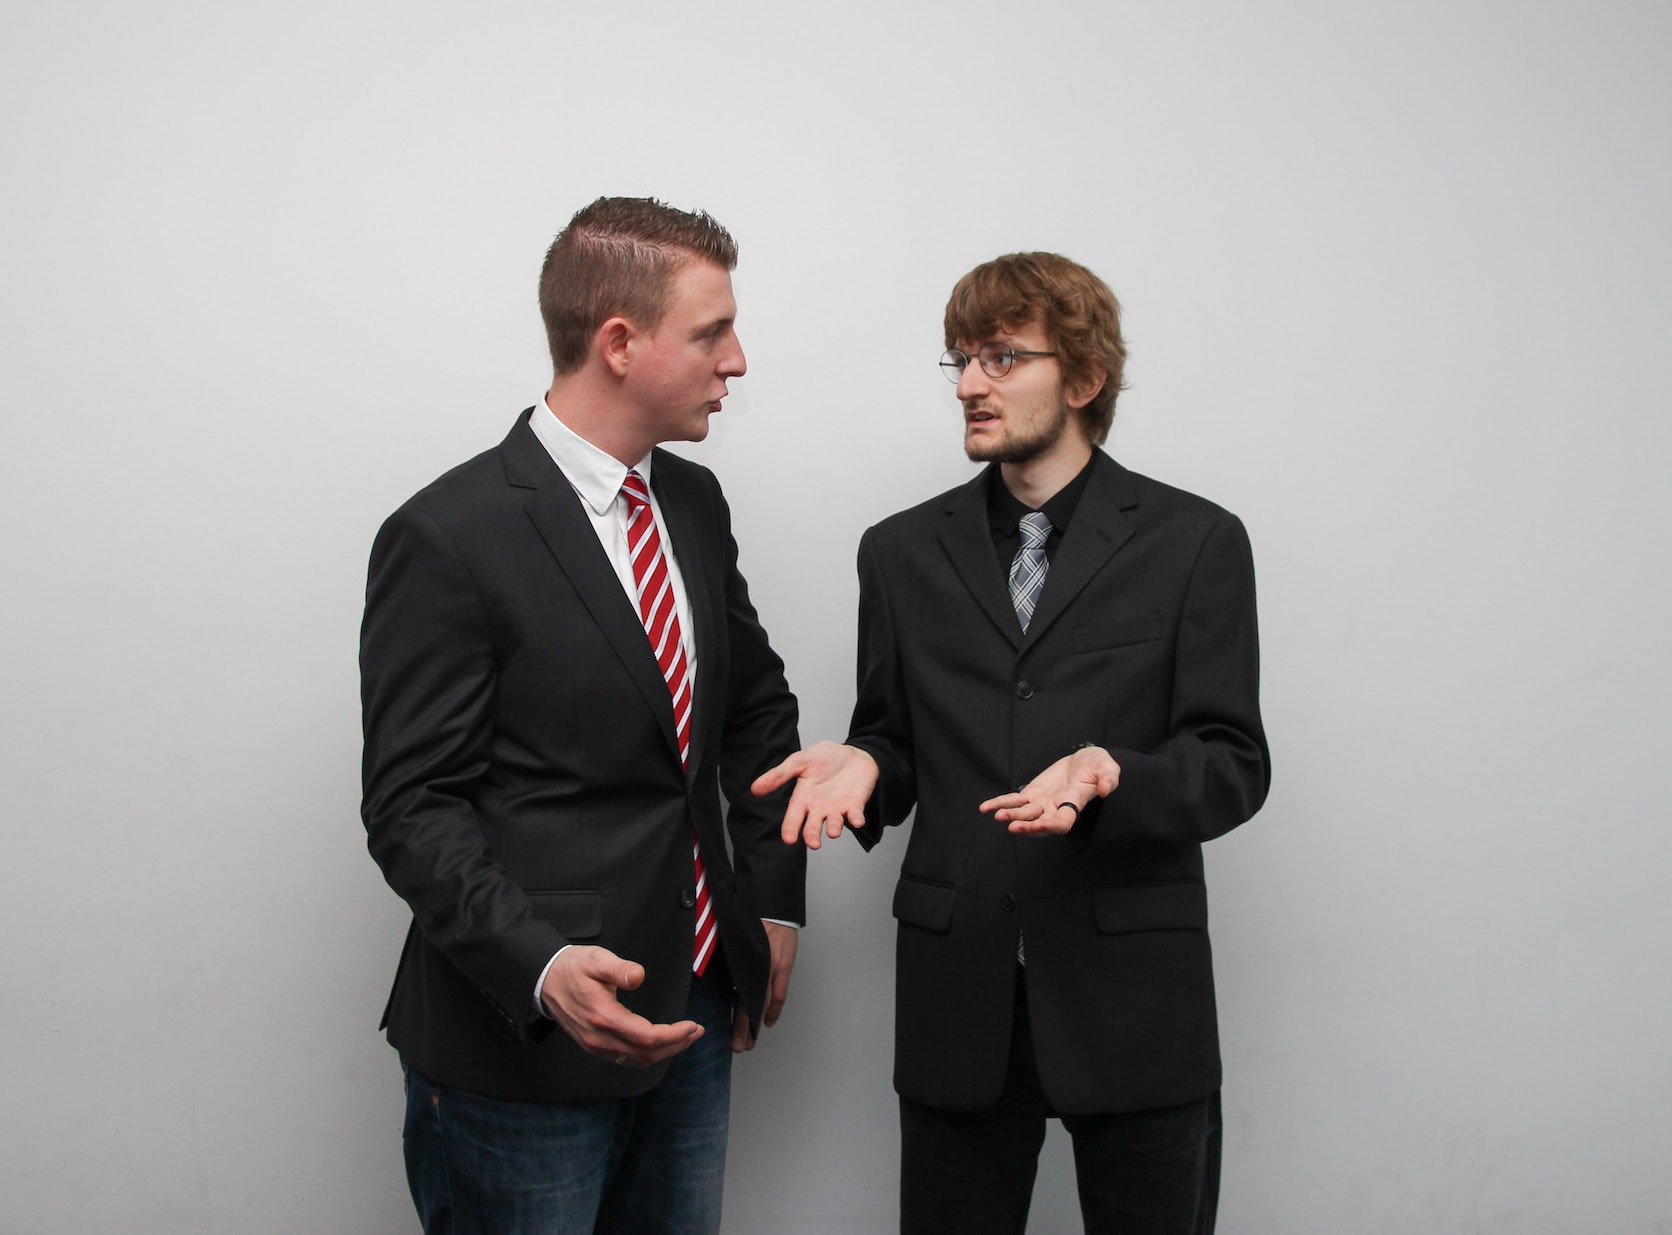 Two colleagues during an argument in the workplace.